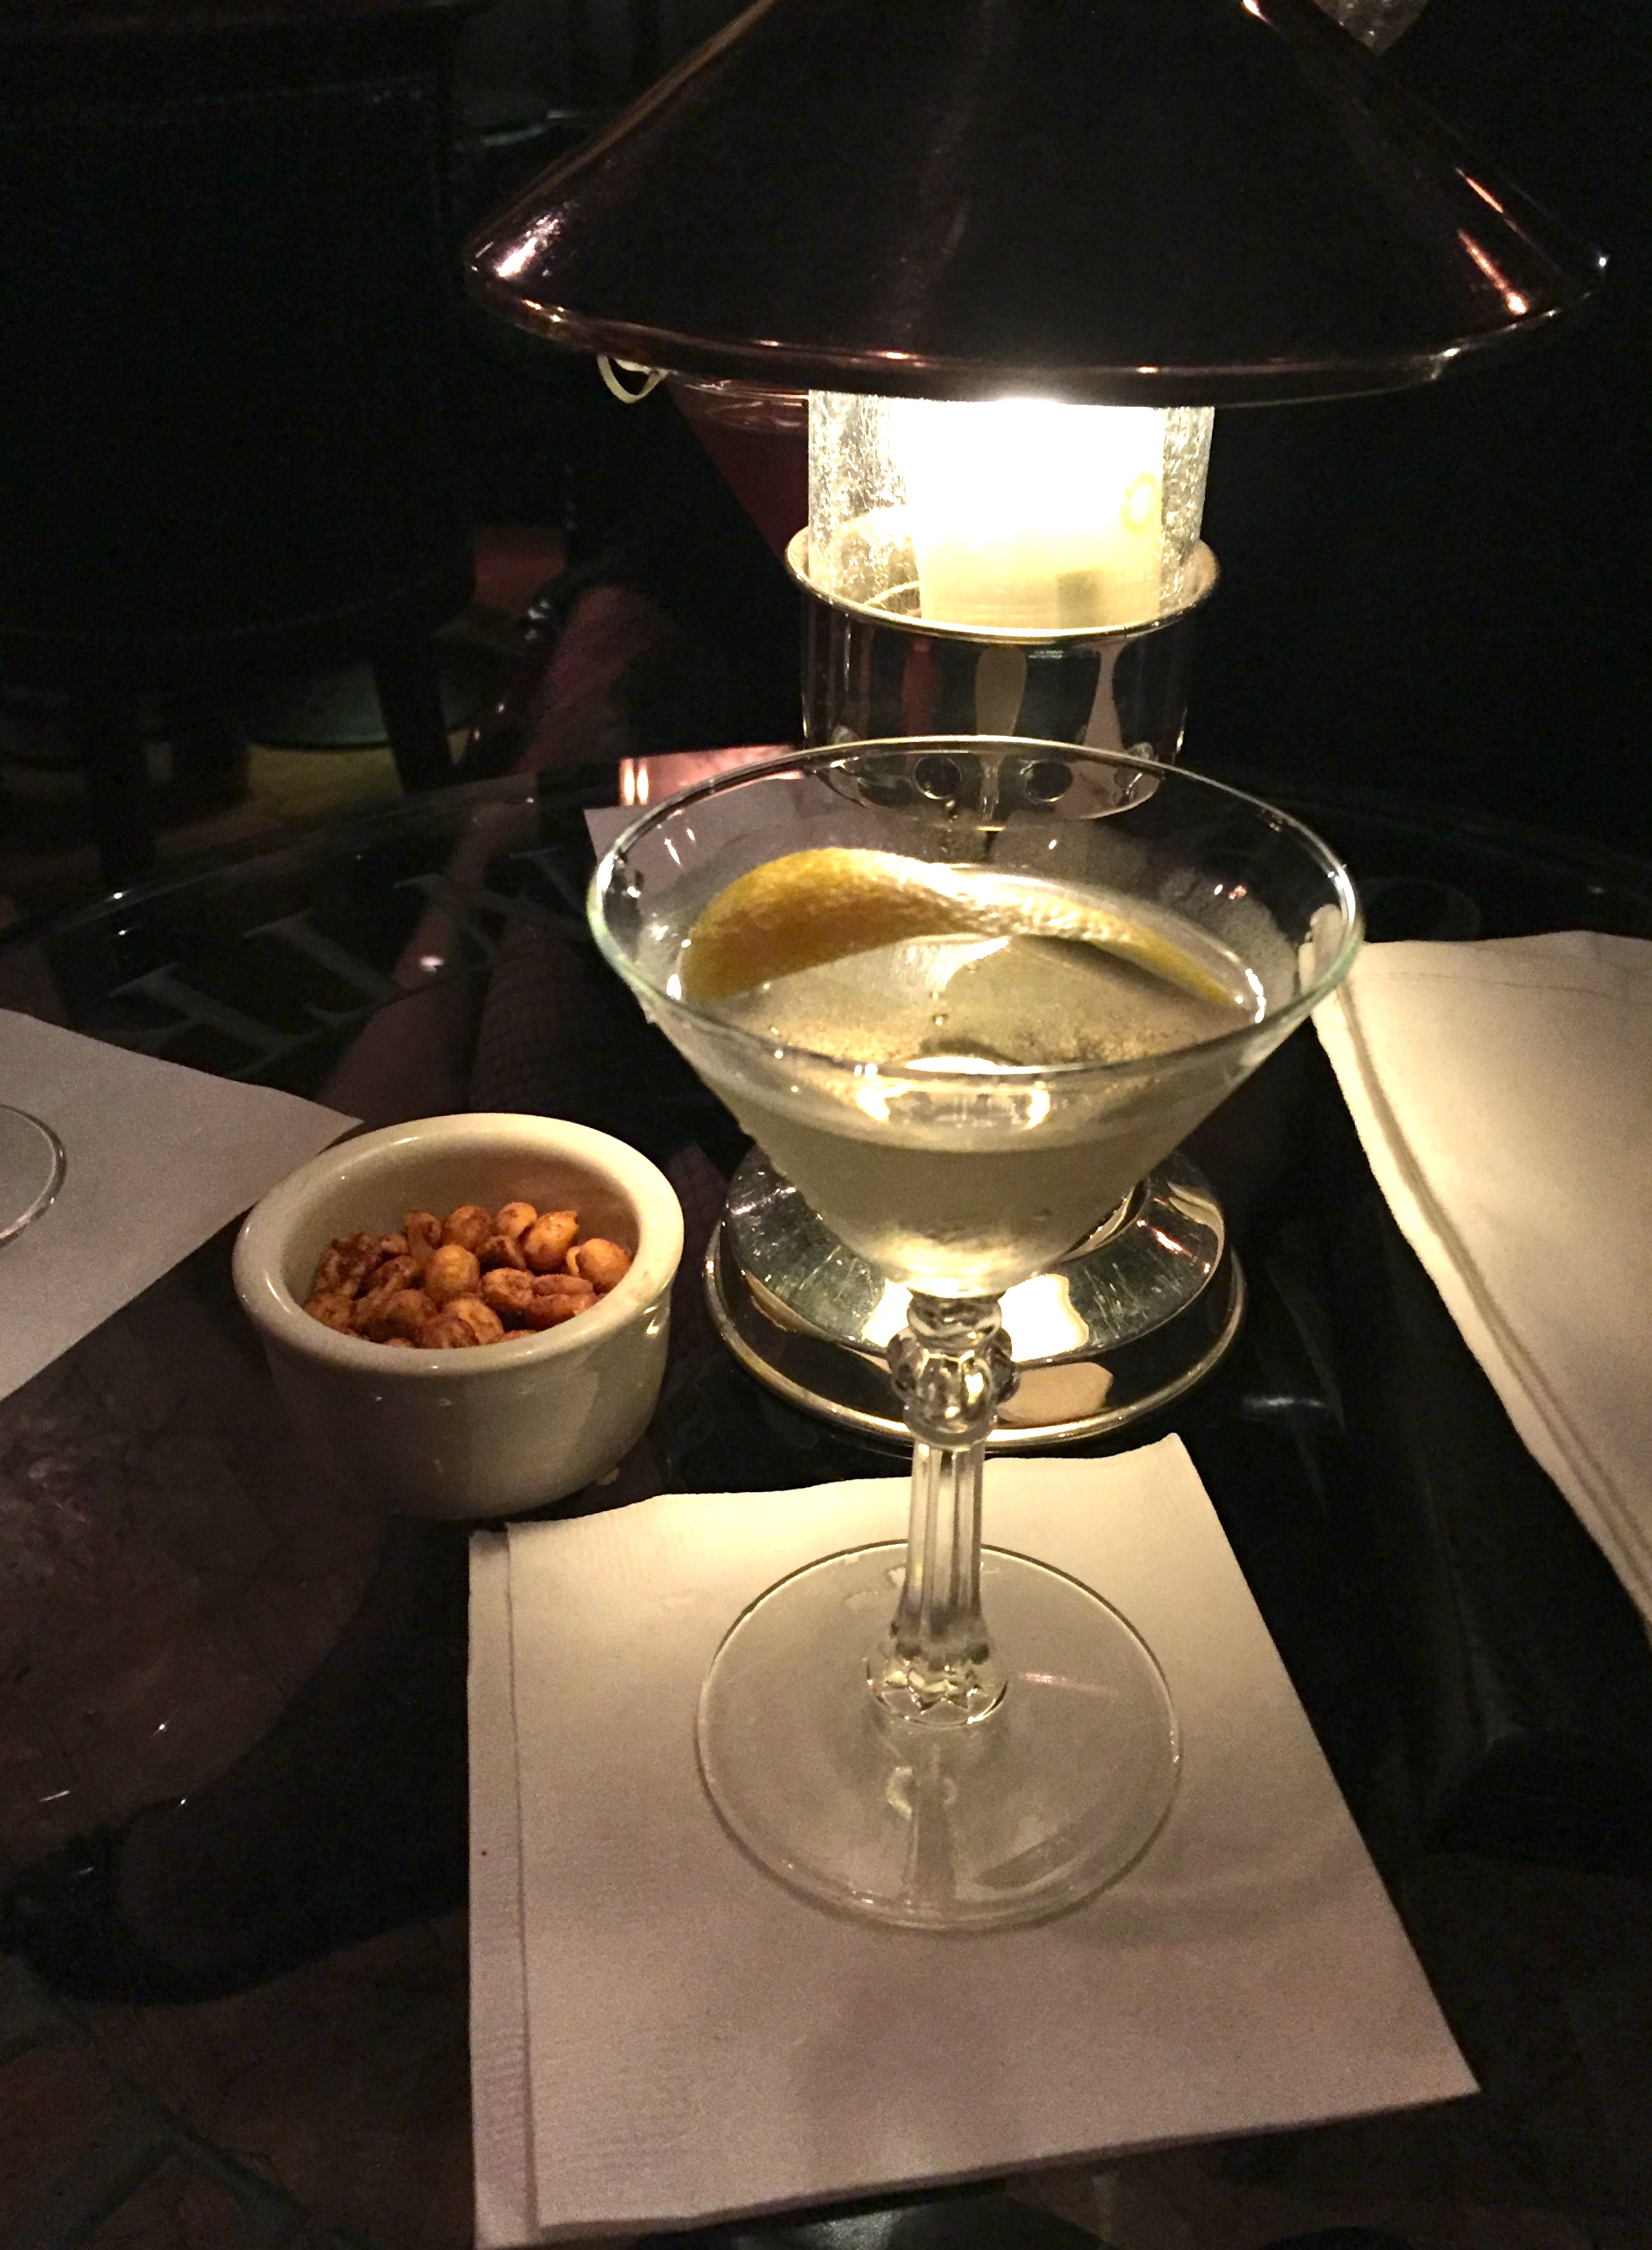 A Vesper (a drink James Bond would have)